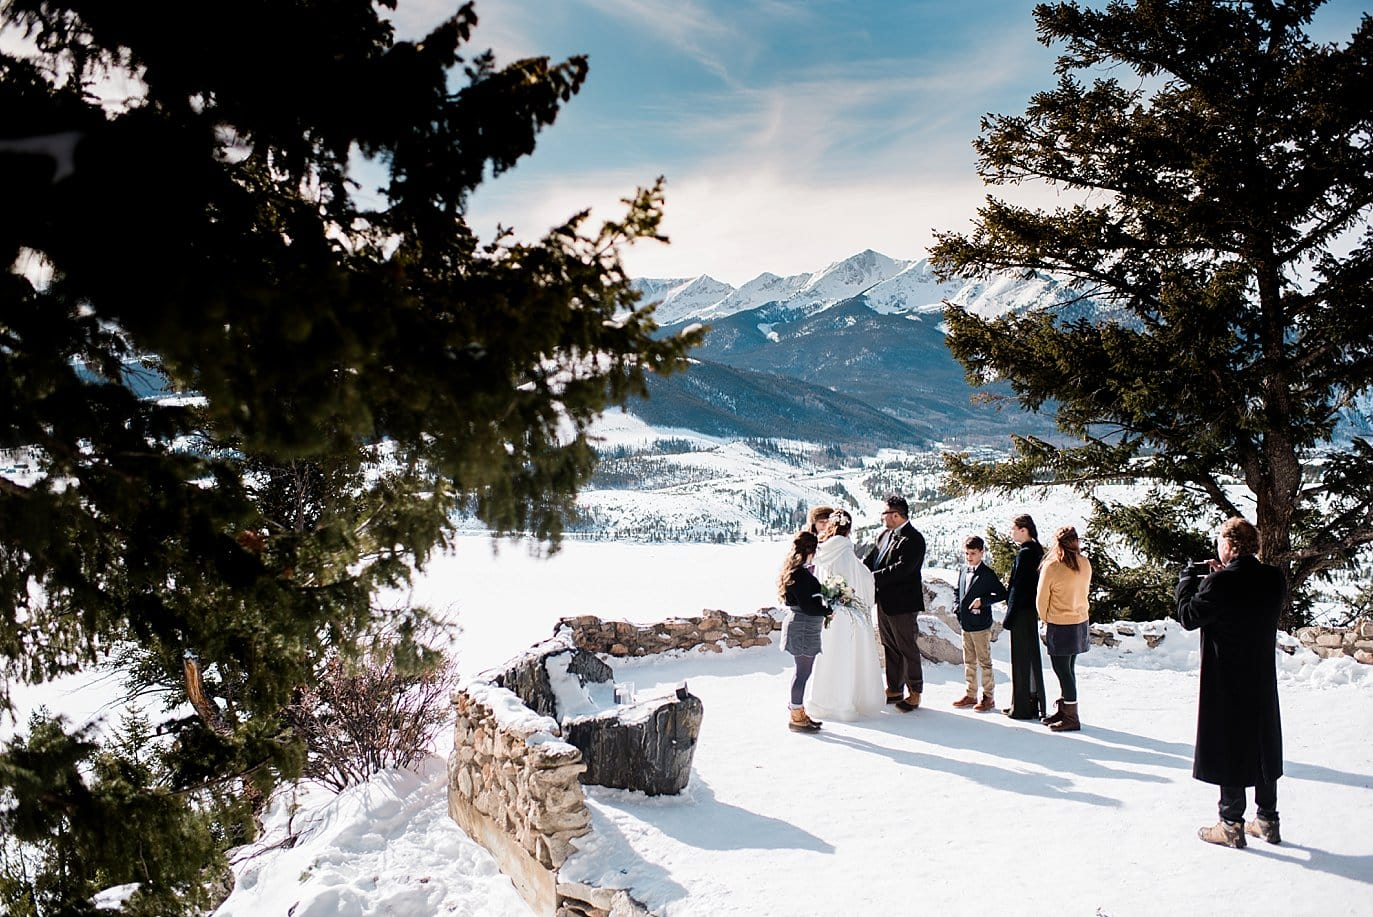 Intimate family wedding ceremony at Sapphire Point Elopement by Vail wedding photographer Jennie Crate Photographer